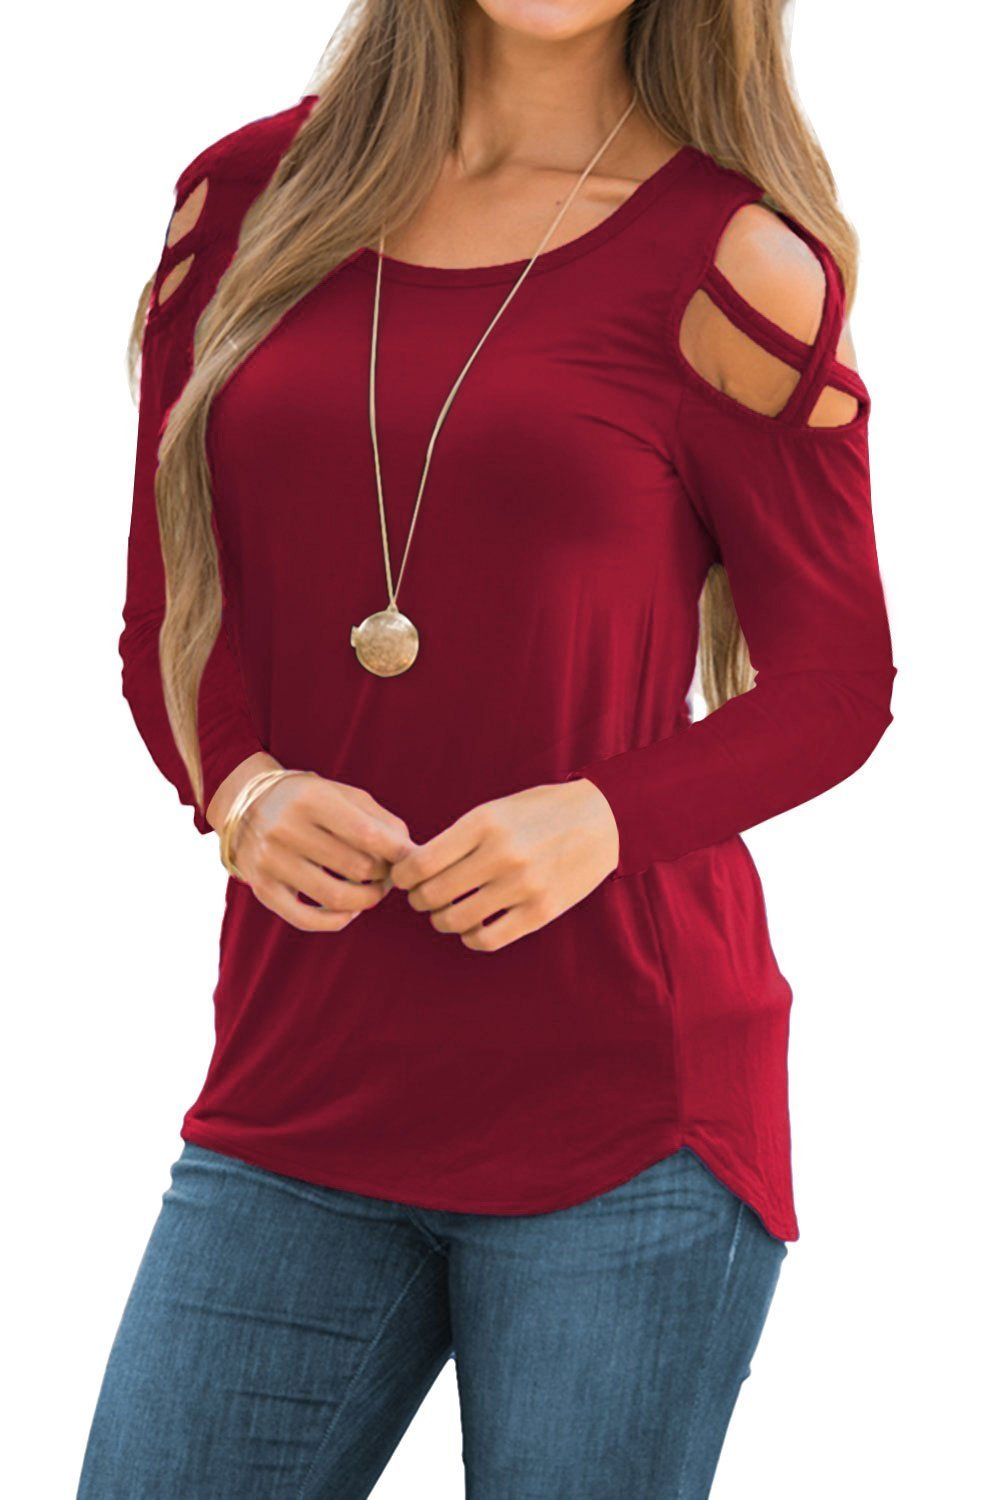 Doris Women's Casual Tunic Top Criss Cross Cold Shoulder Long Sleeve Strappy T-Shirt Tops Wine Red M